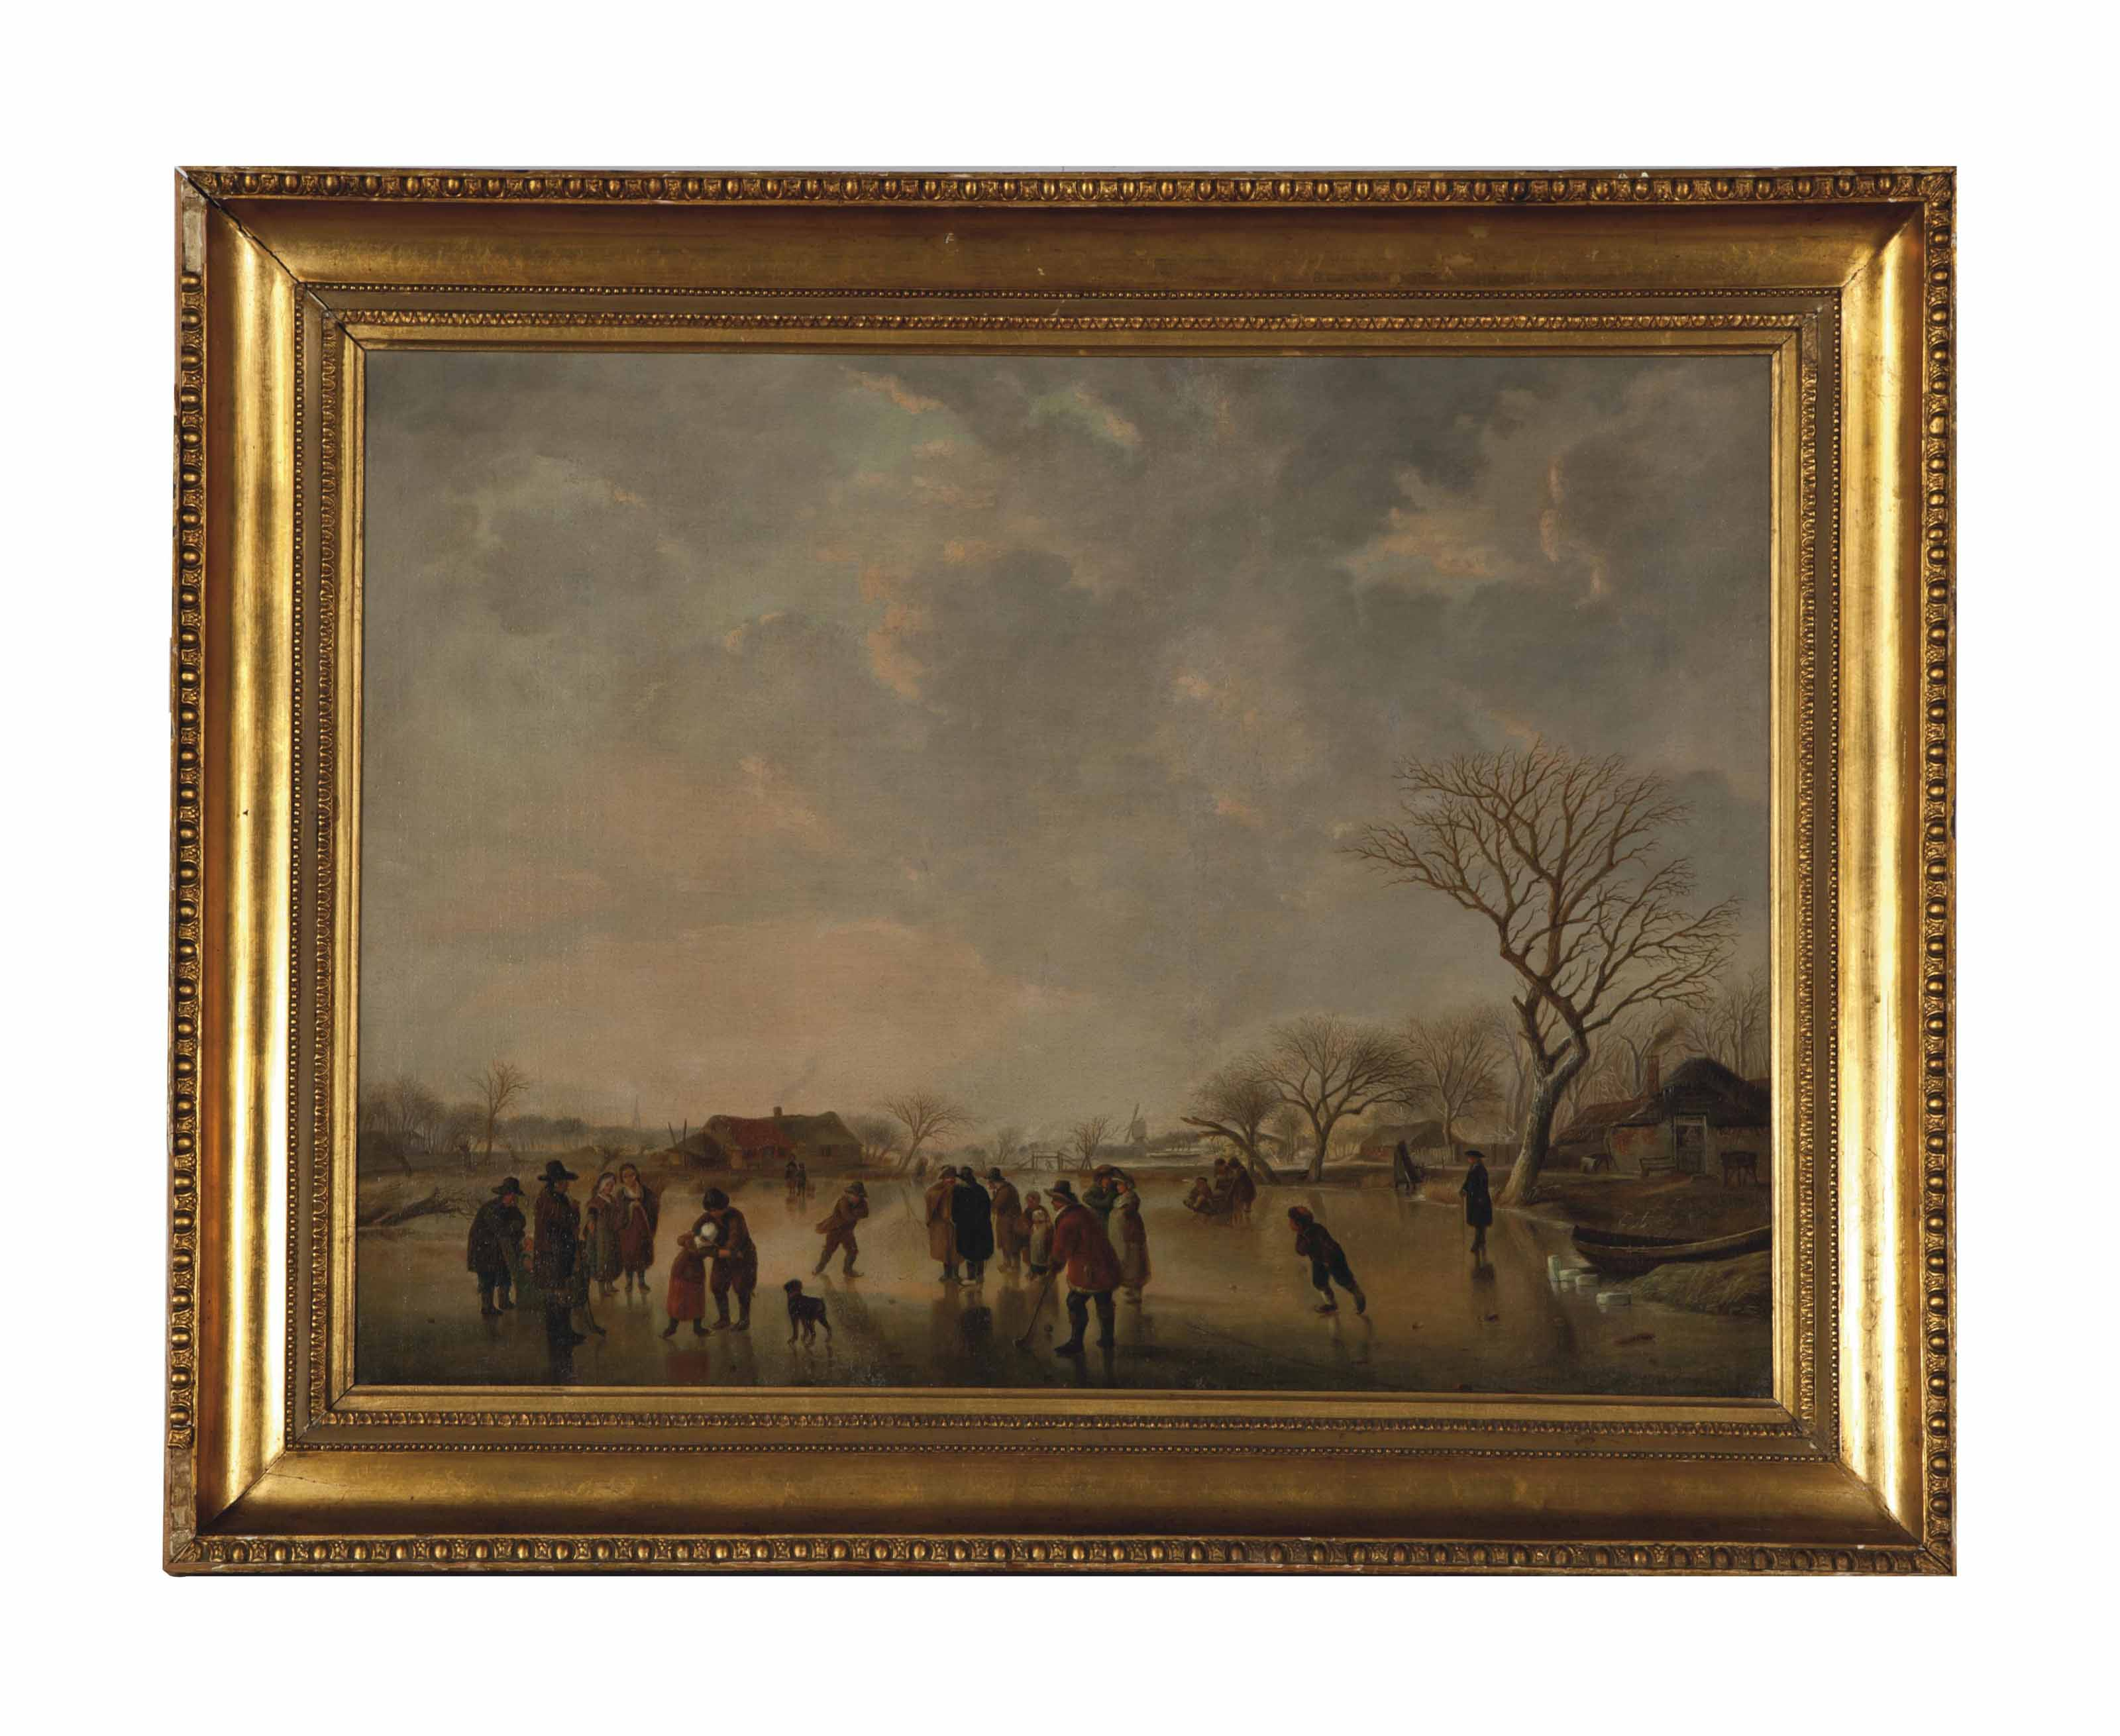 Winter scene with figures skating on a lake